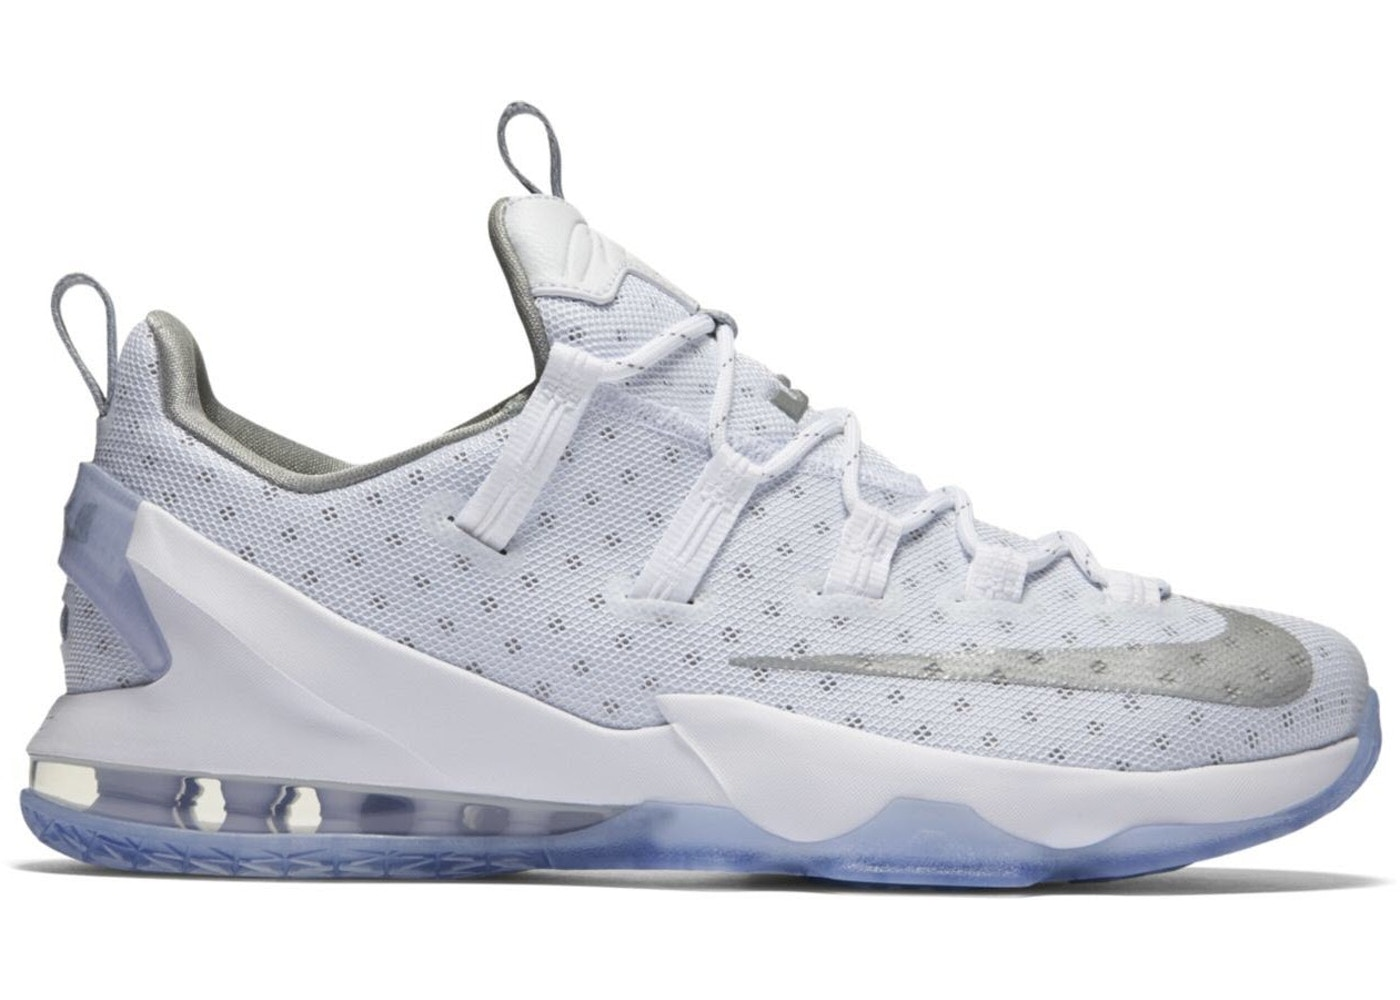 competitive price 63bd6 a6390 LeBron 13 Low Metallic Silver - 831925-100